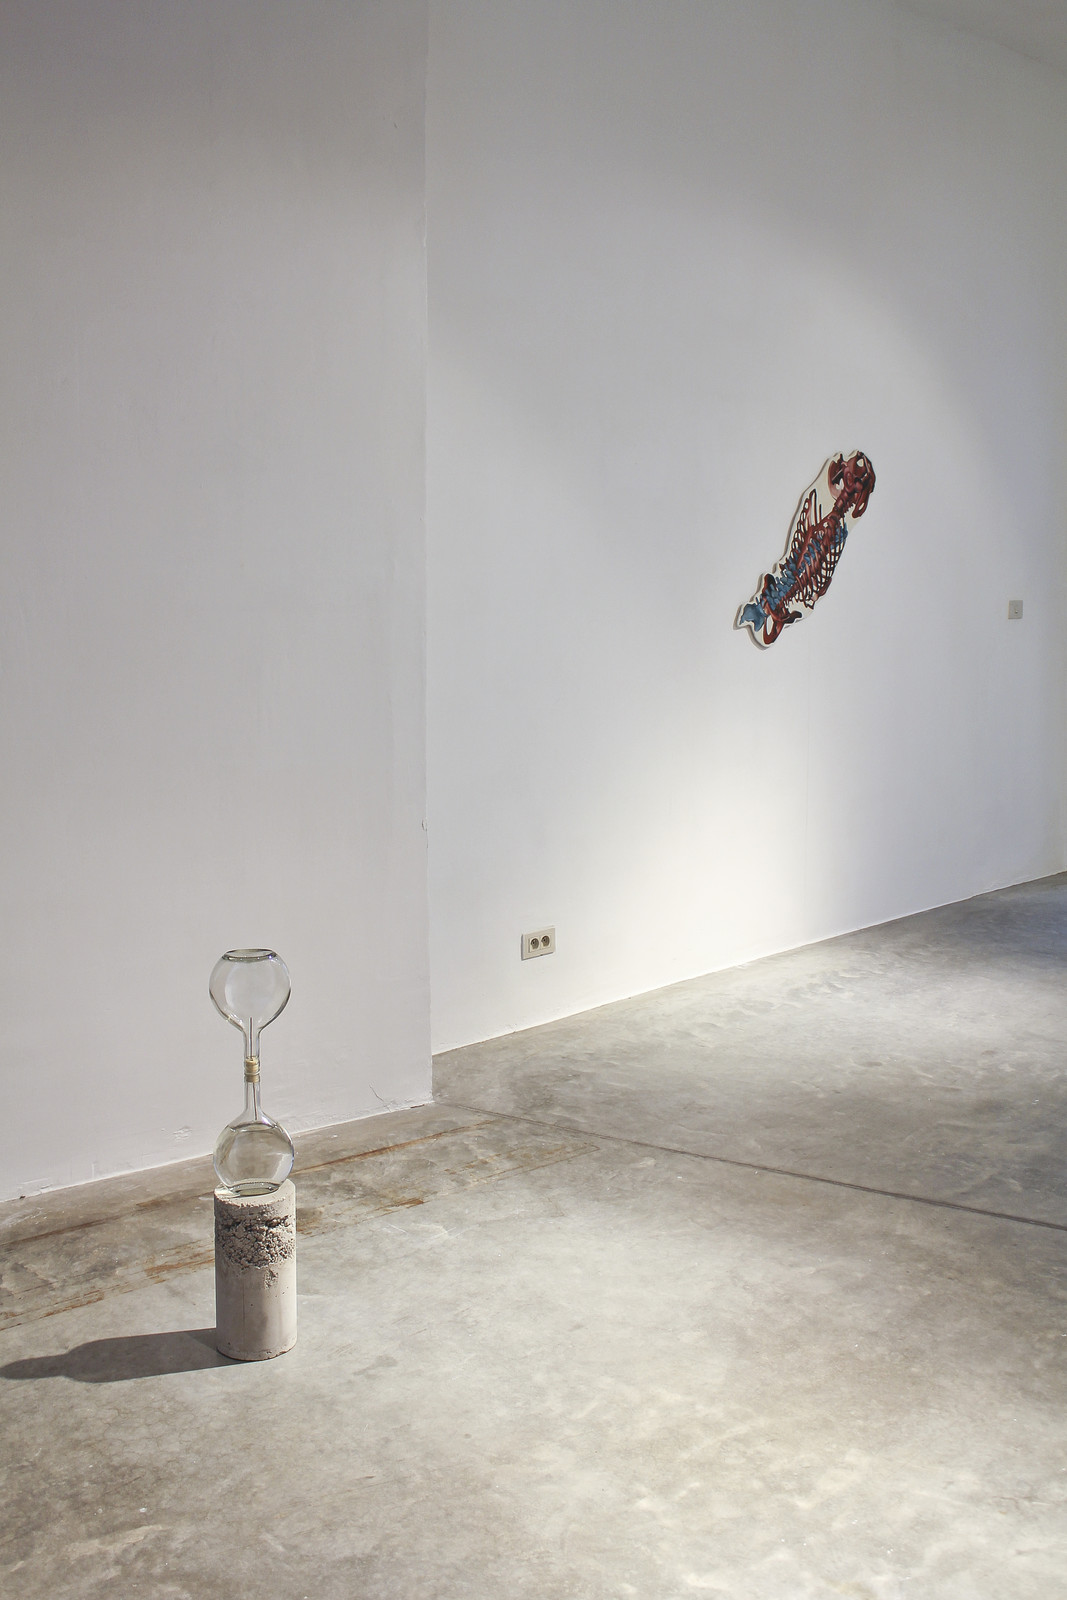 Federico Acal & Liesbeth Doms at DMW Art Space 15